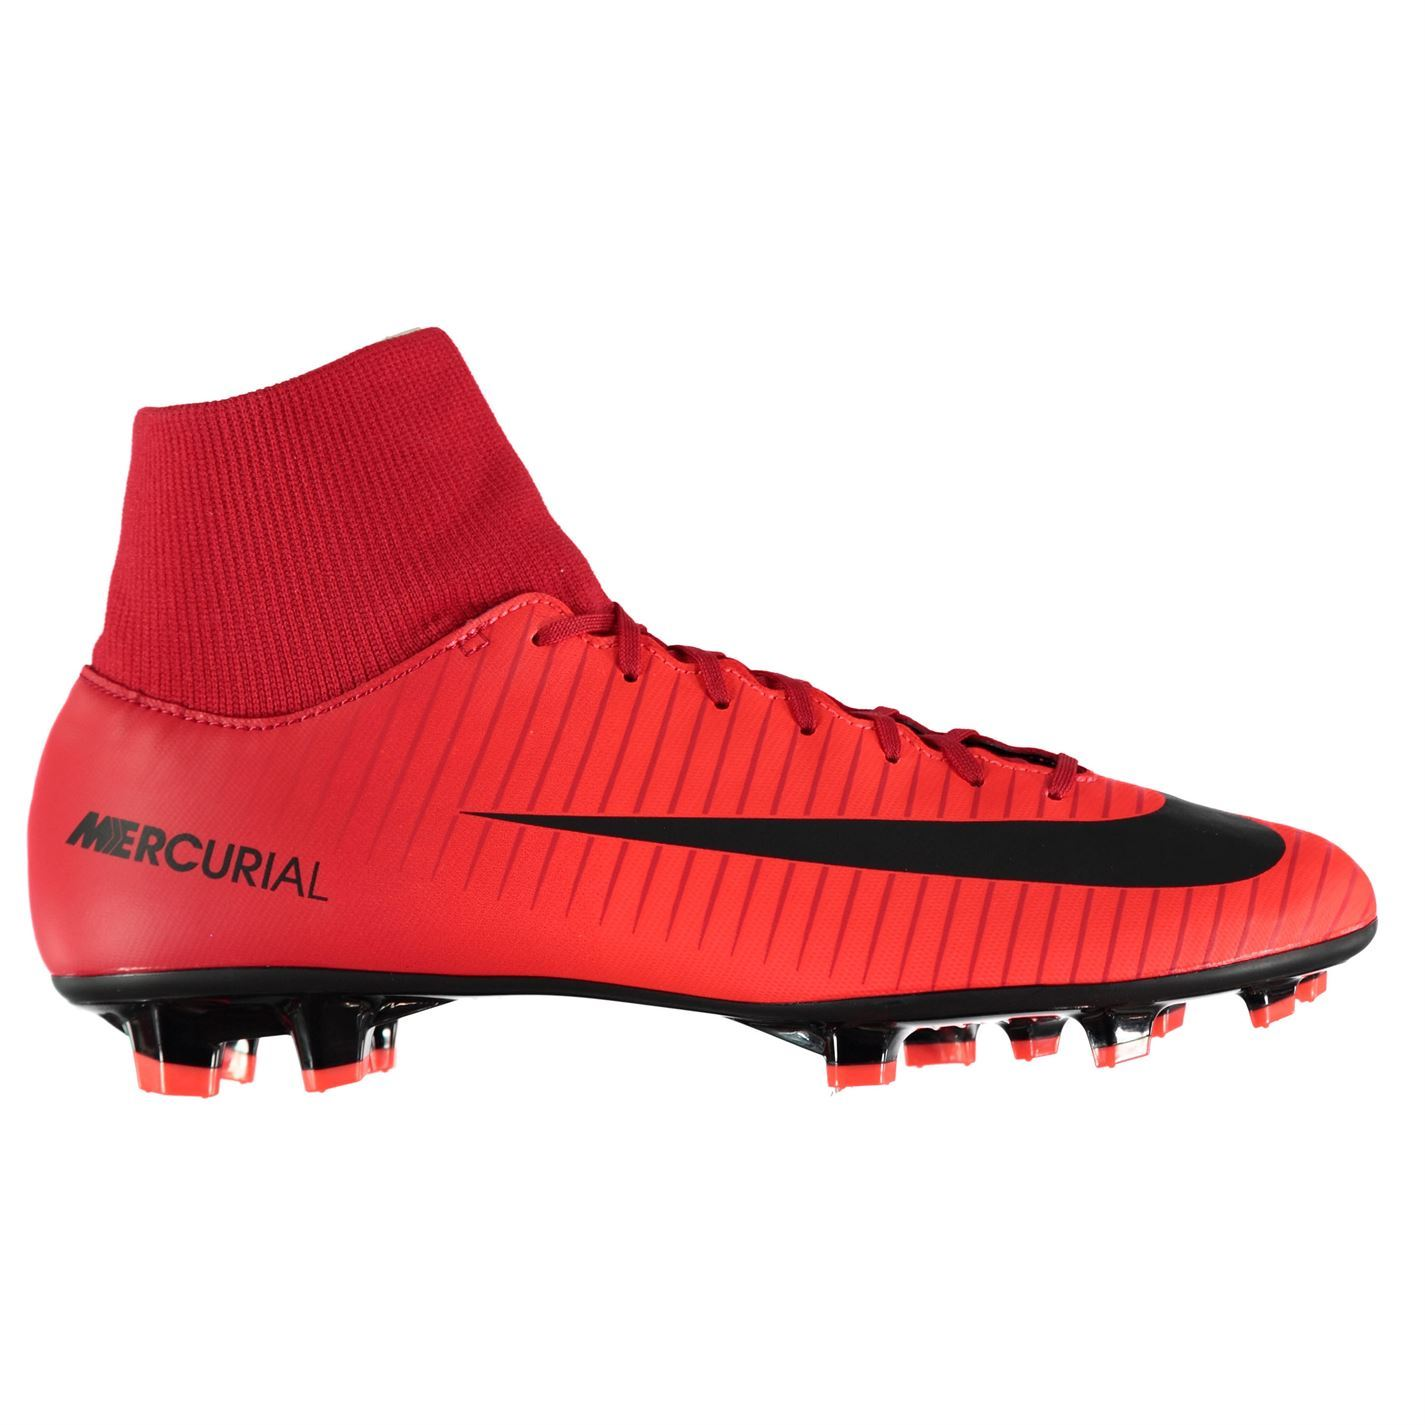 520ef3807f9a0 ... Nike Mercurial Victory DF FG Firm Ground Football Boots Mens Soccer  Shoe Cleats